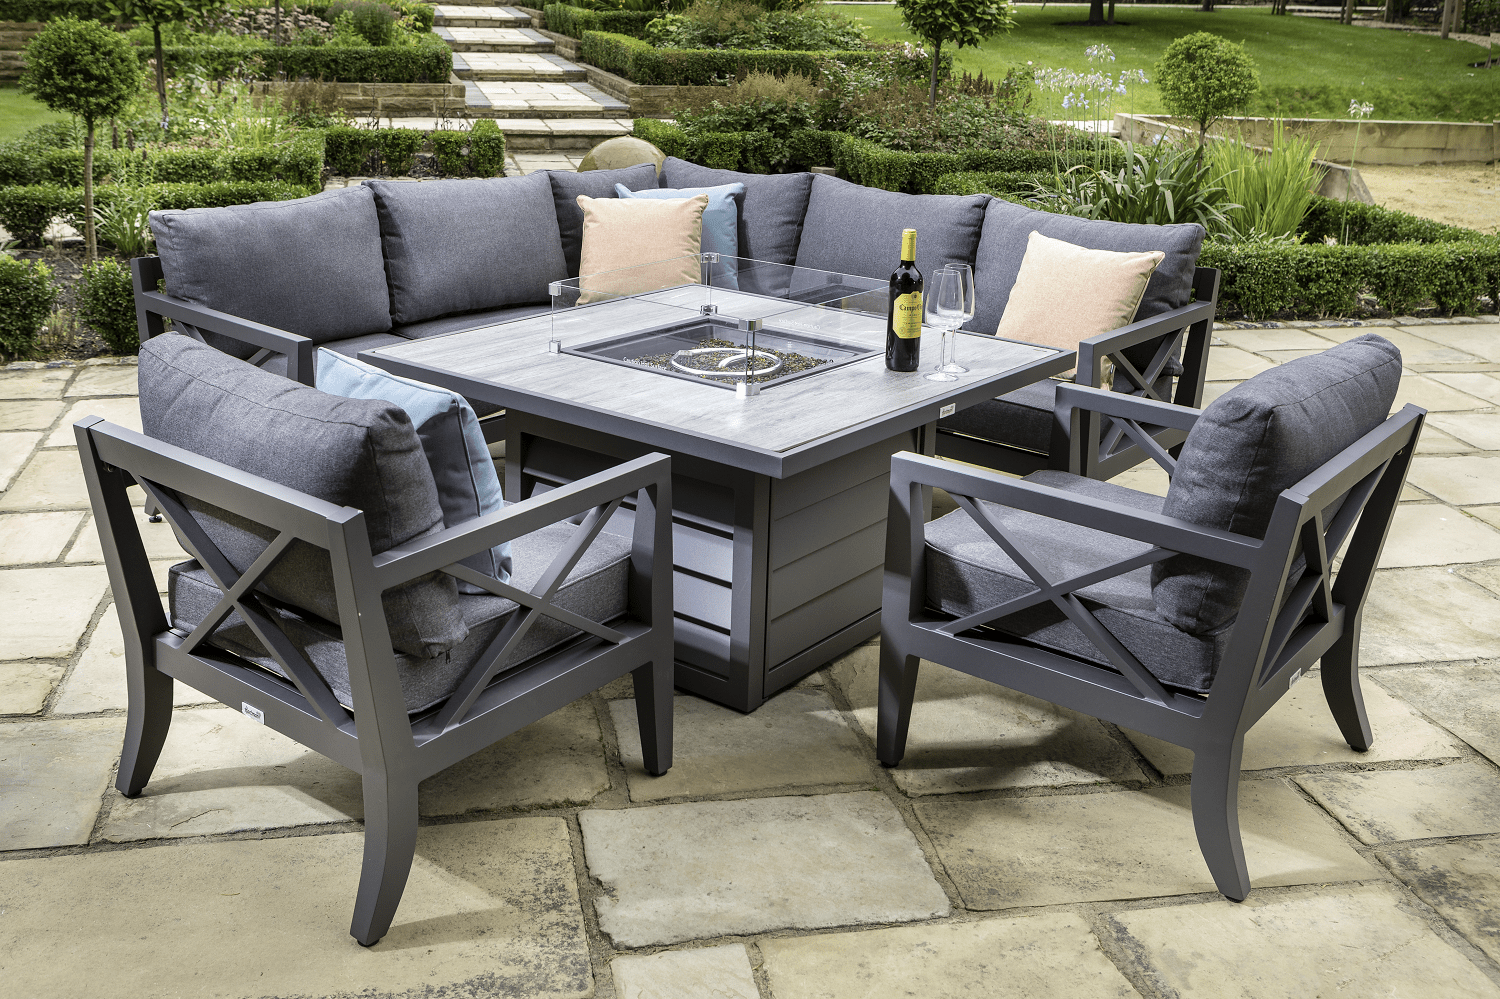 hartman sorrento square casual dining set with gas fire pit table in xerix slate